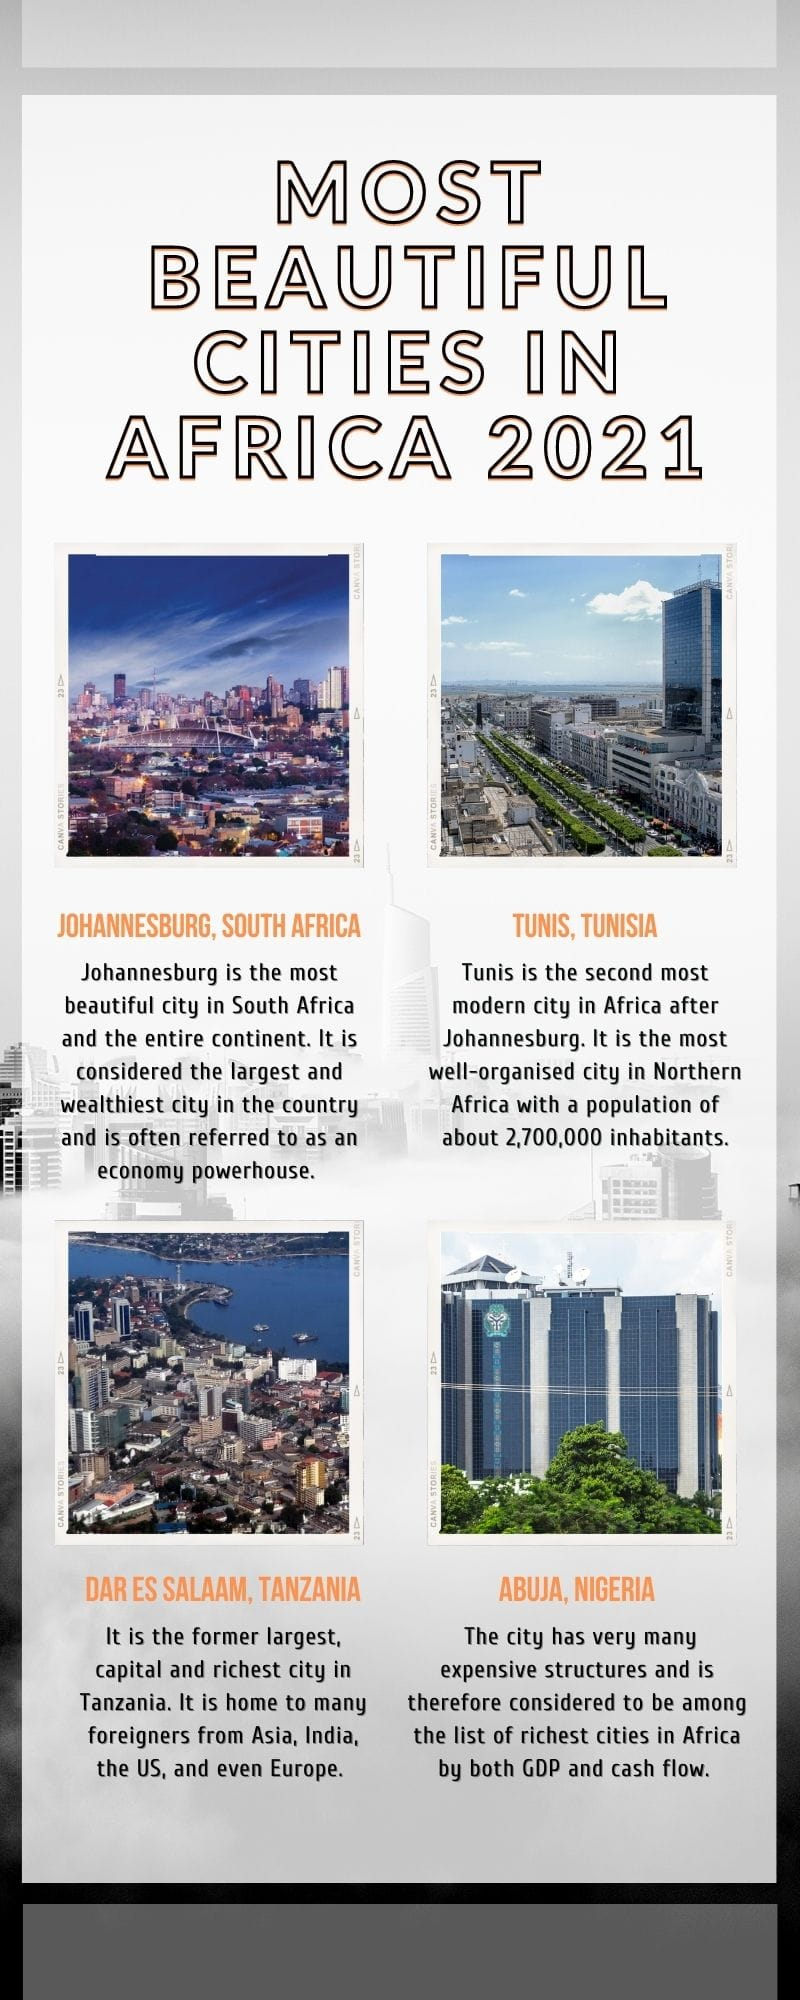 most beautiful cities in Africa 2021